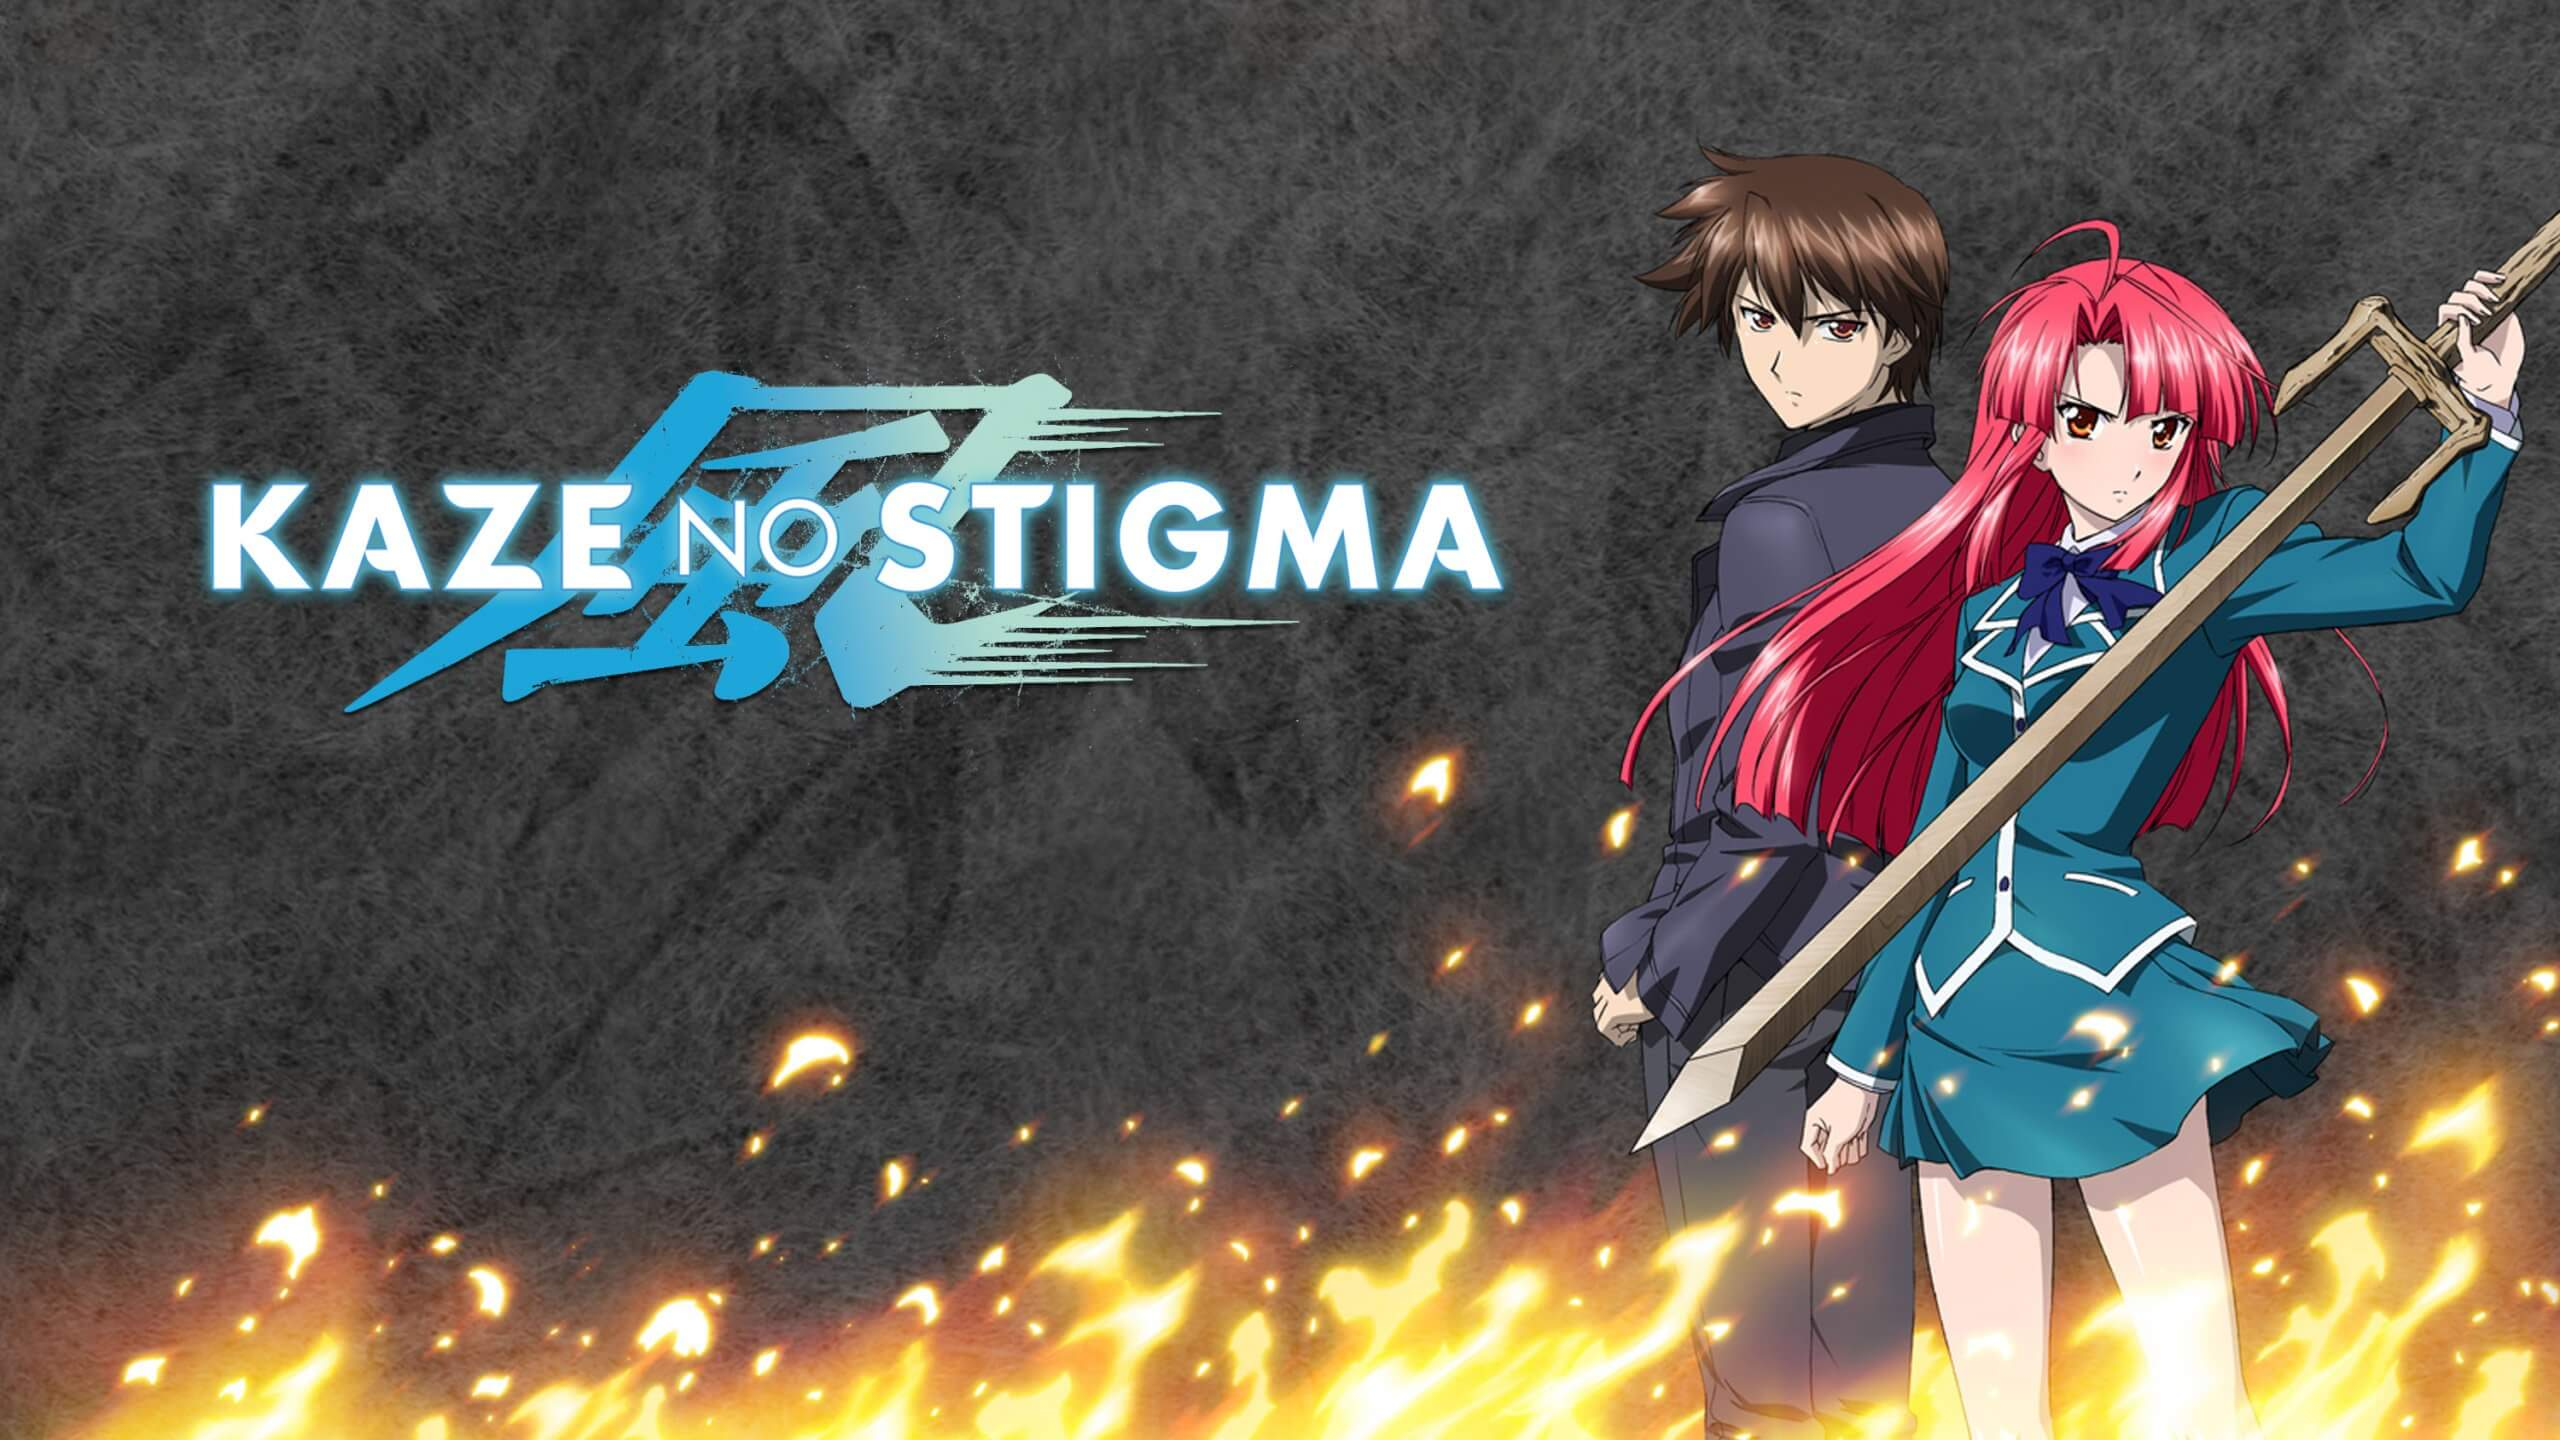 Kaze no Stigma Batch ( Episode 01-24 END ) Subtitle Indonesia